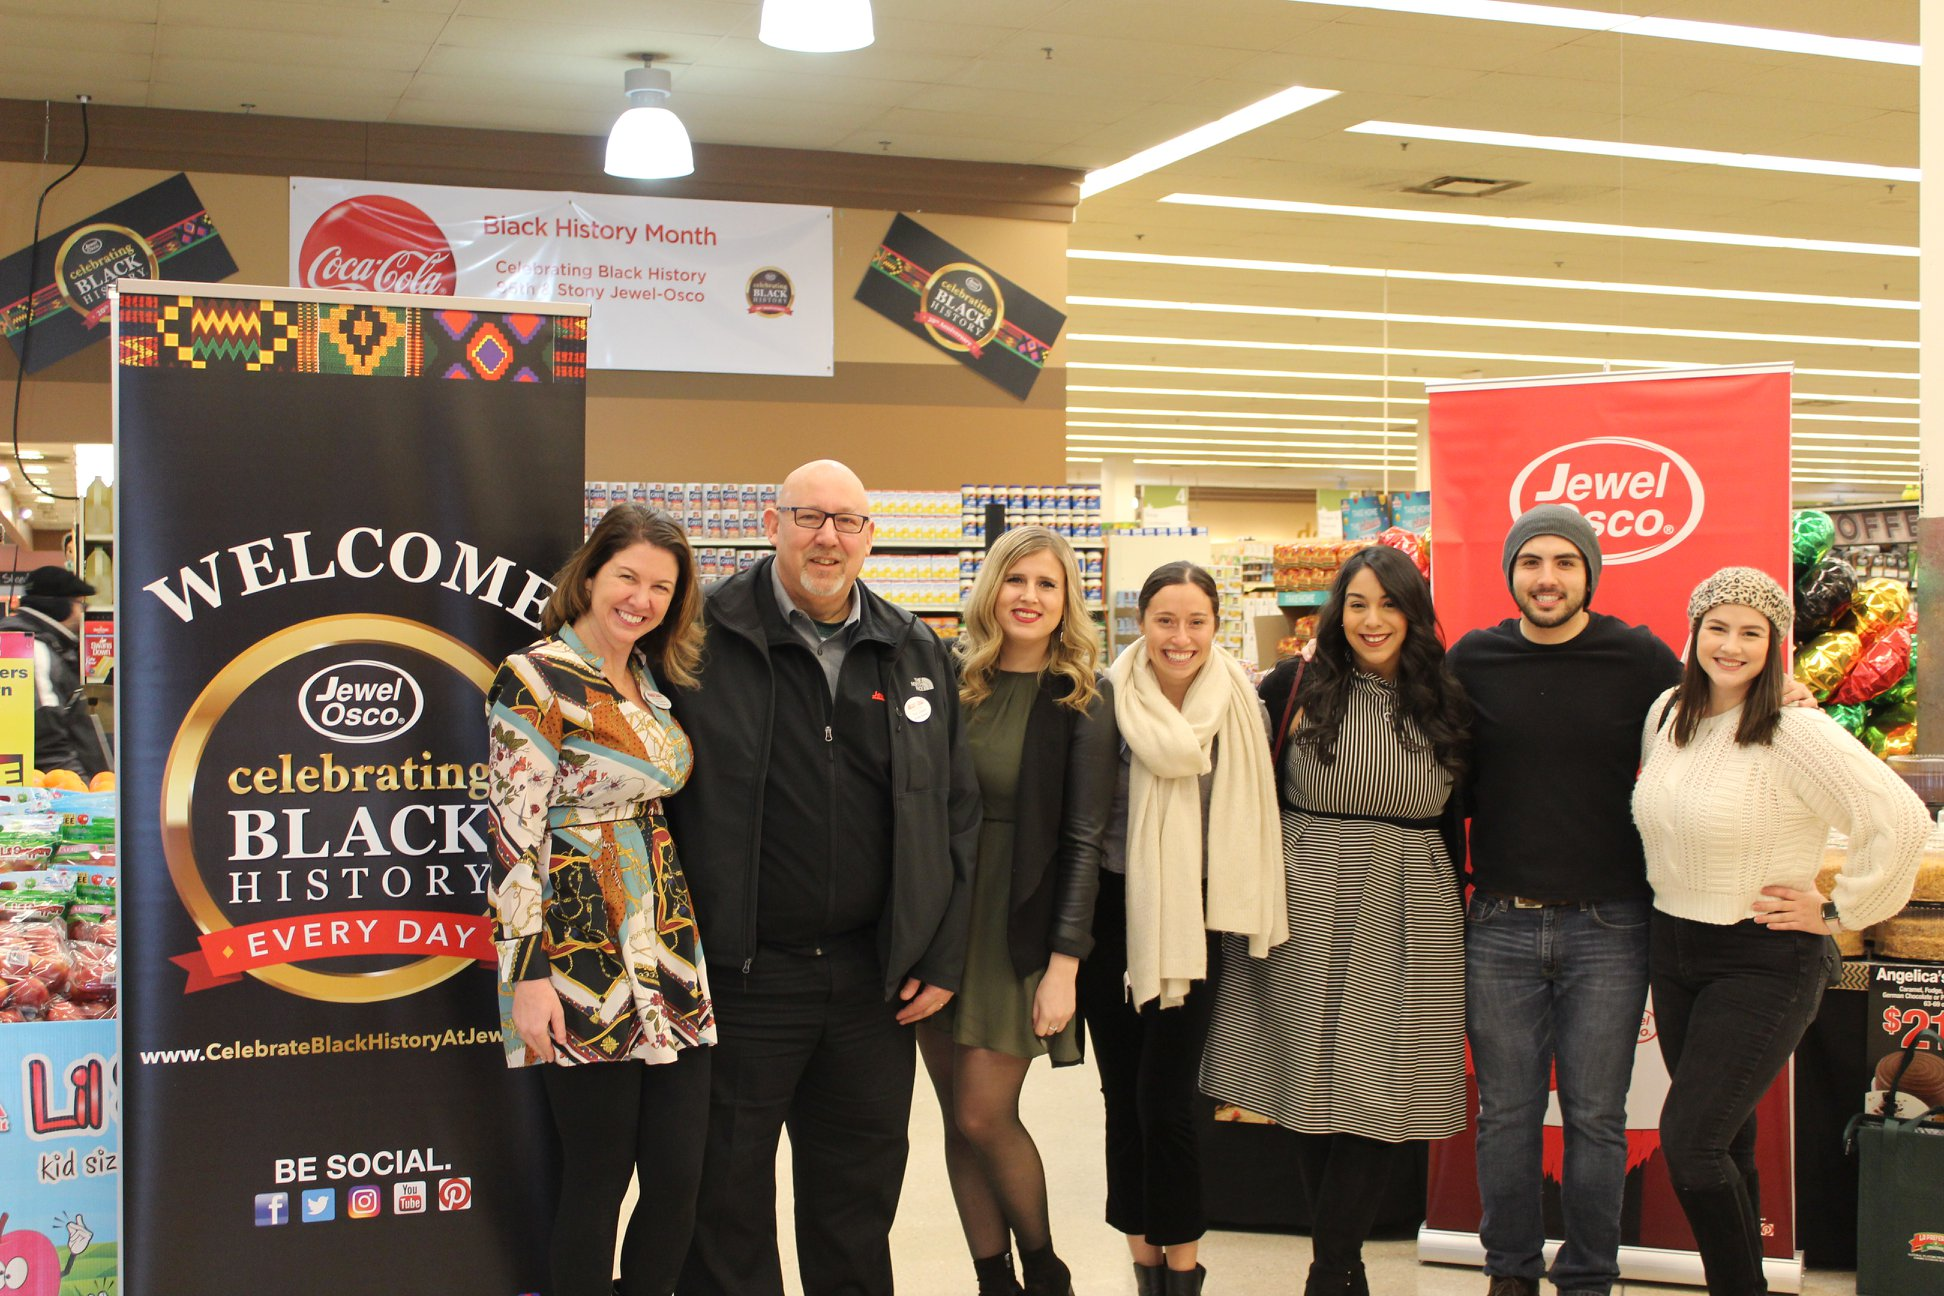 Black History Month 2019 at Jewel-Osco